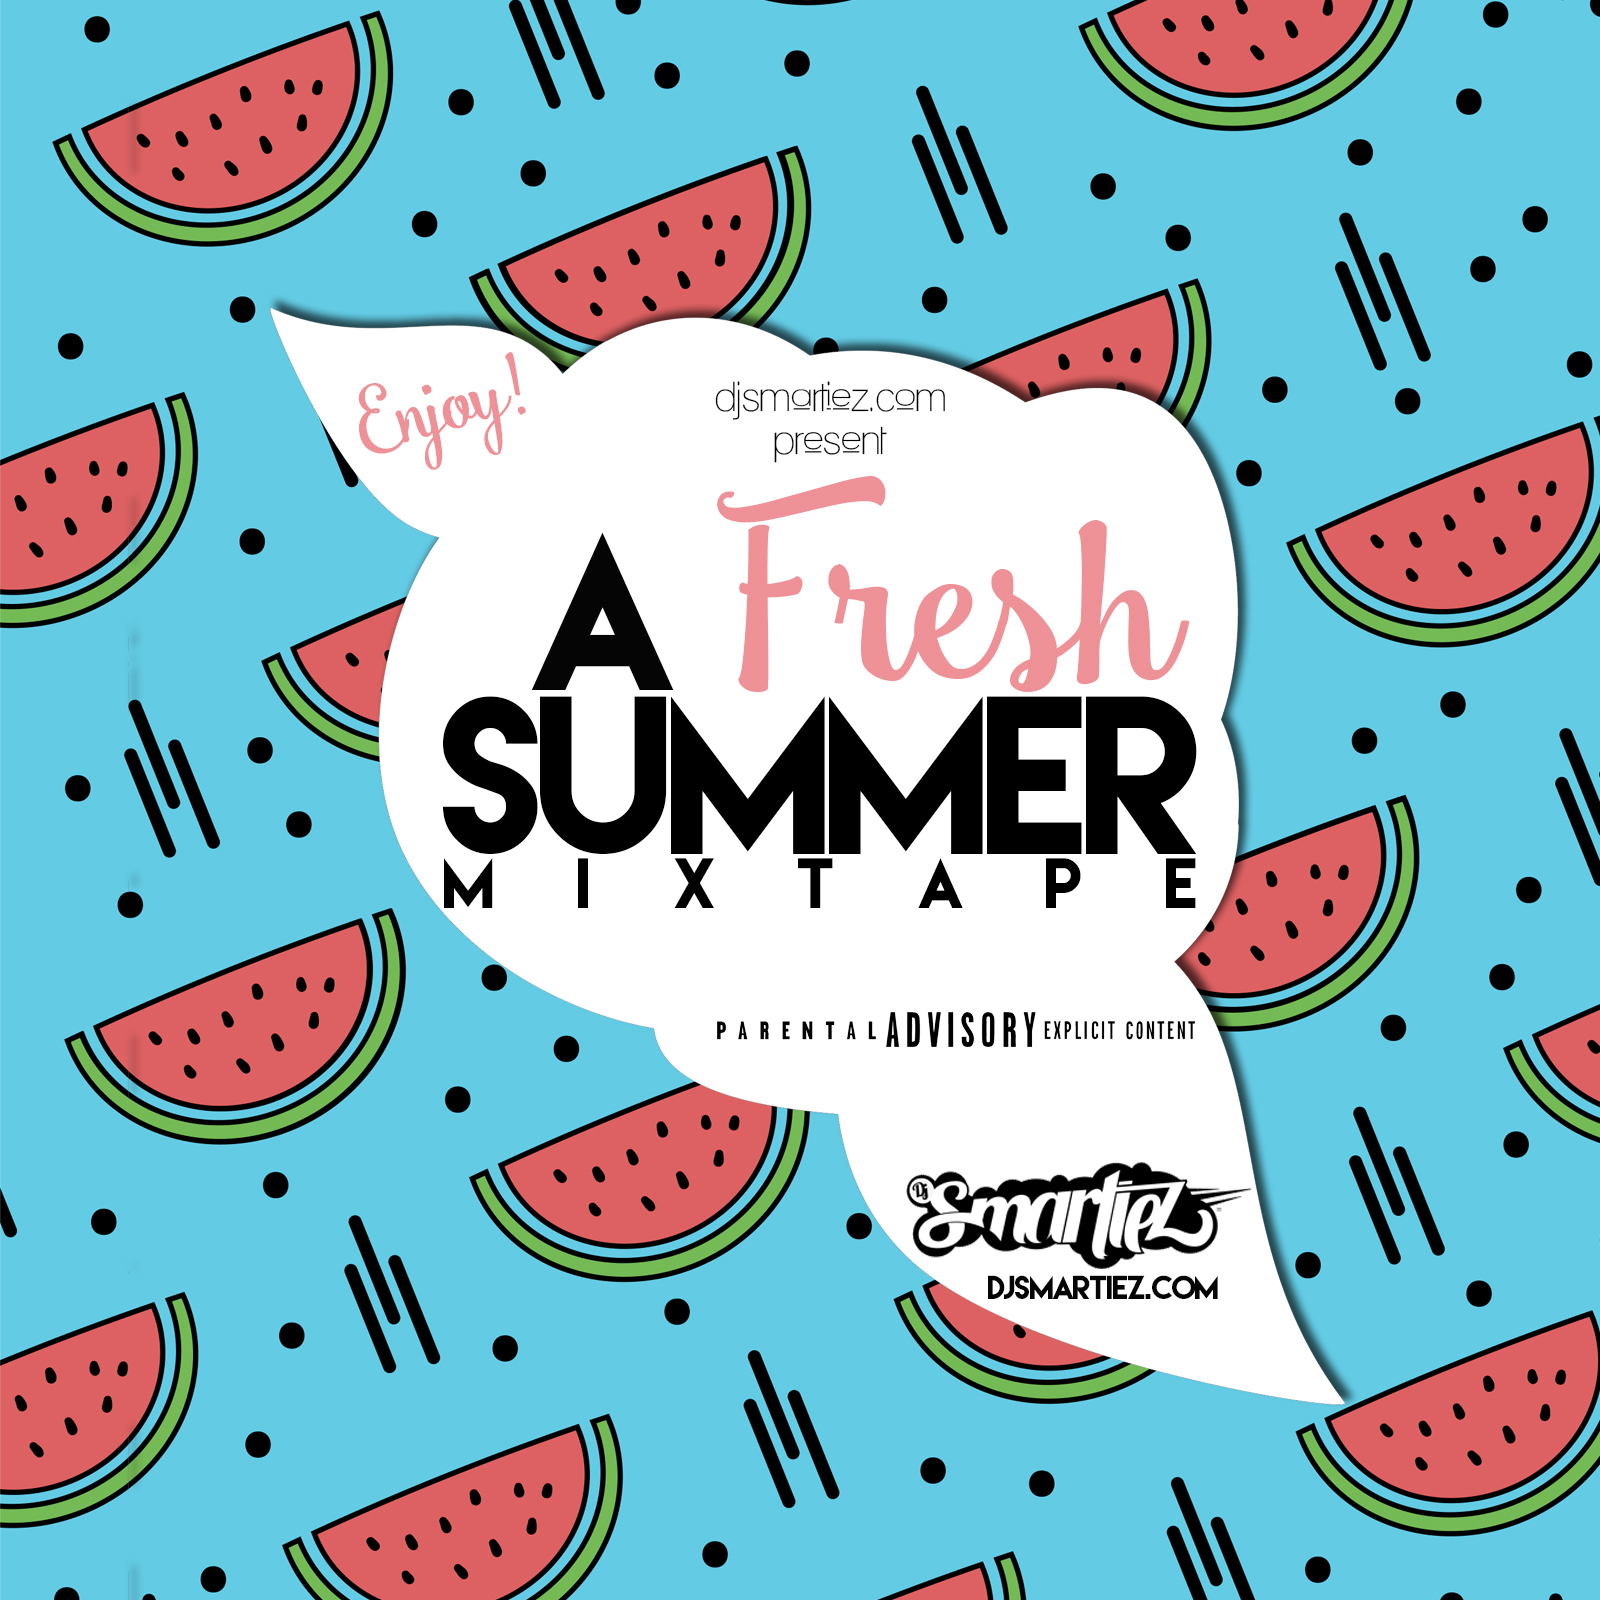 SMARTIEZ – A FRESH SUMMER MIXTAPE